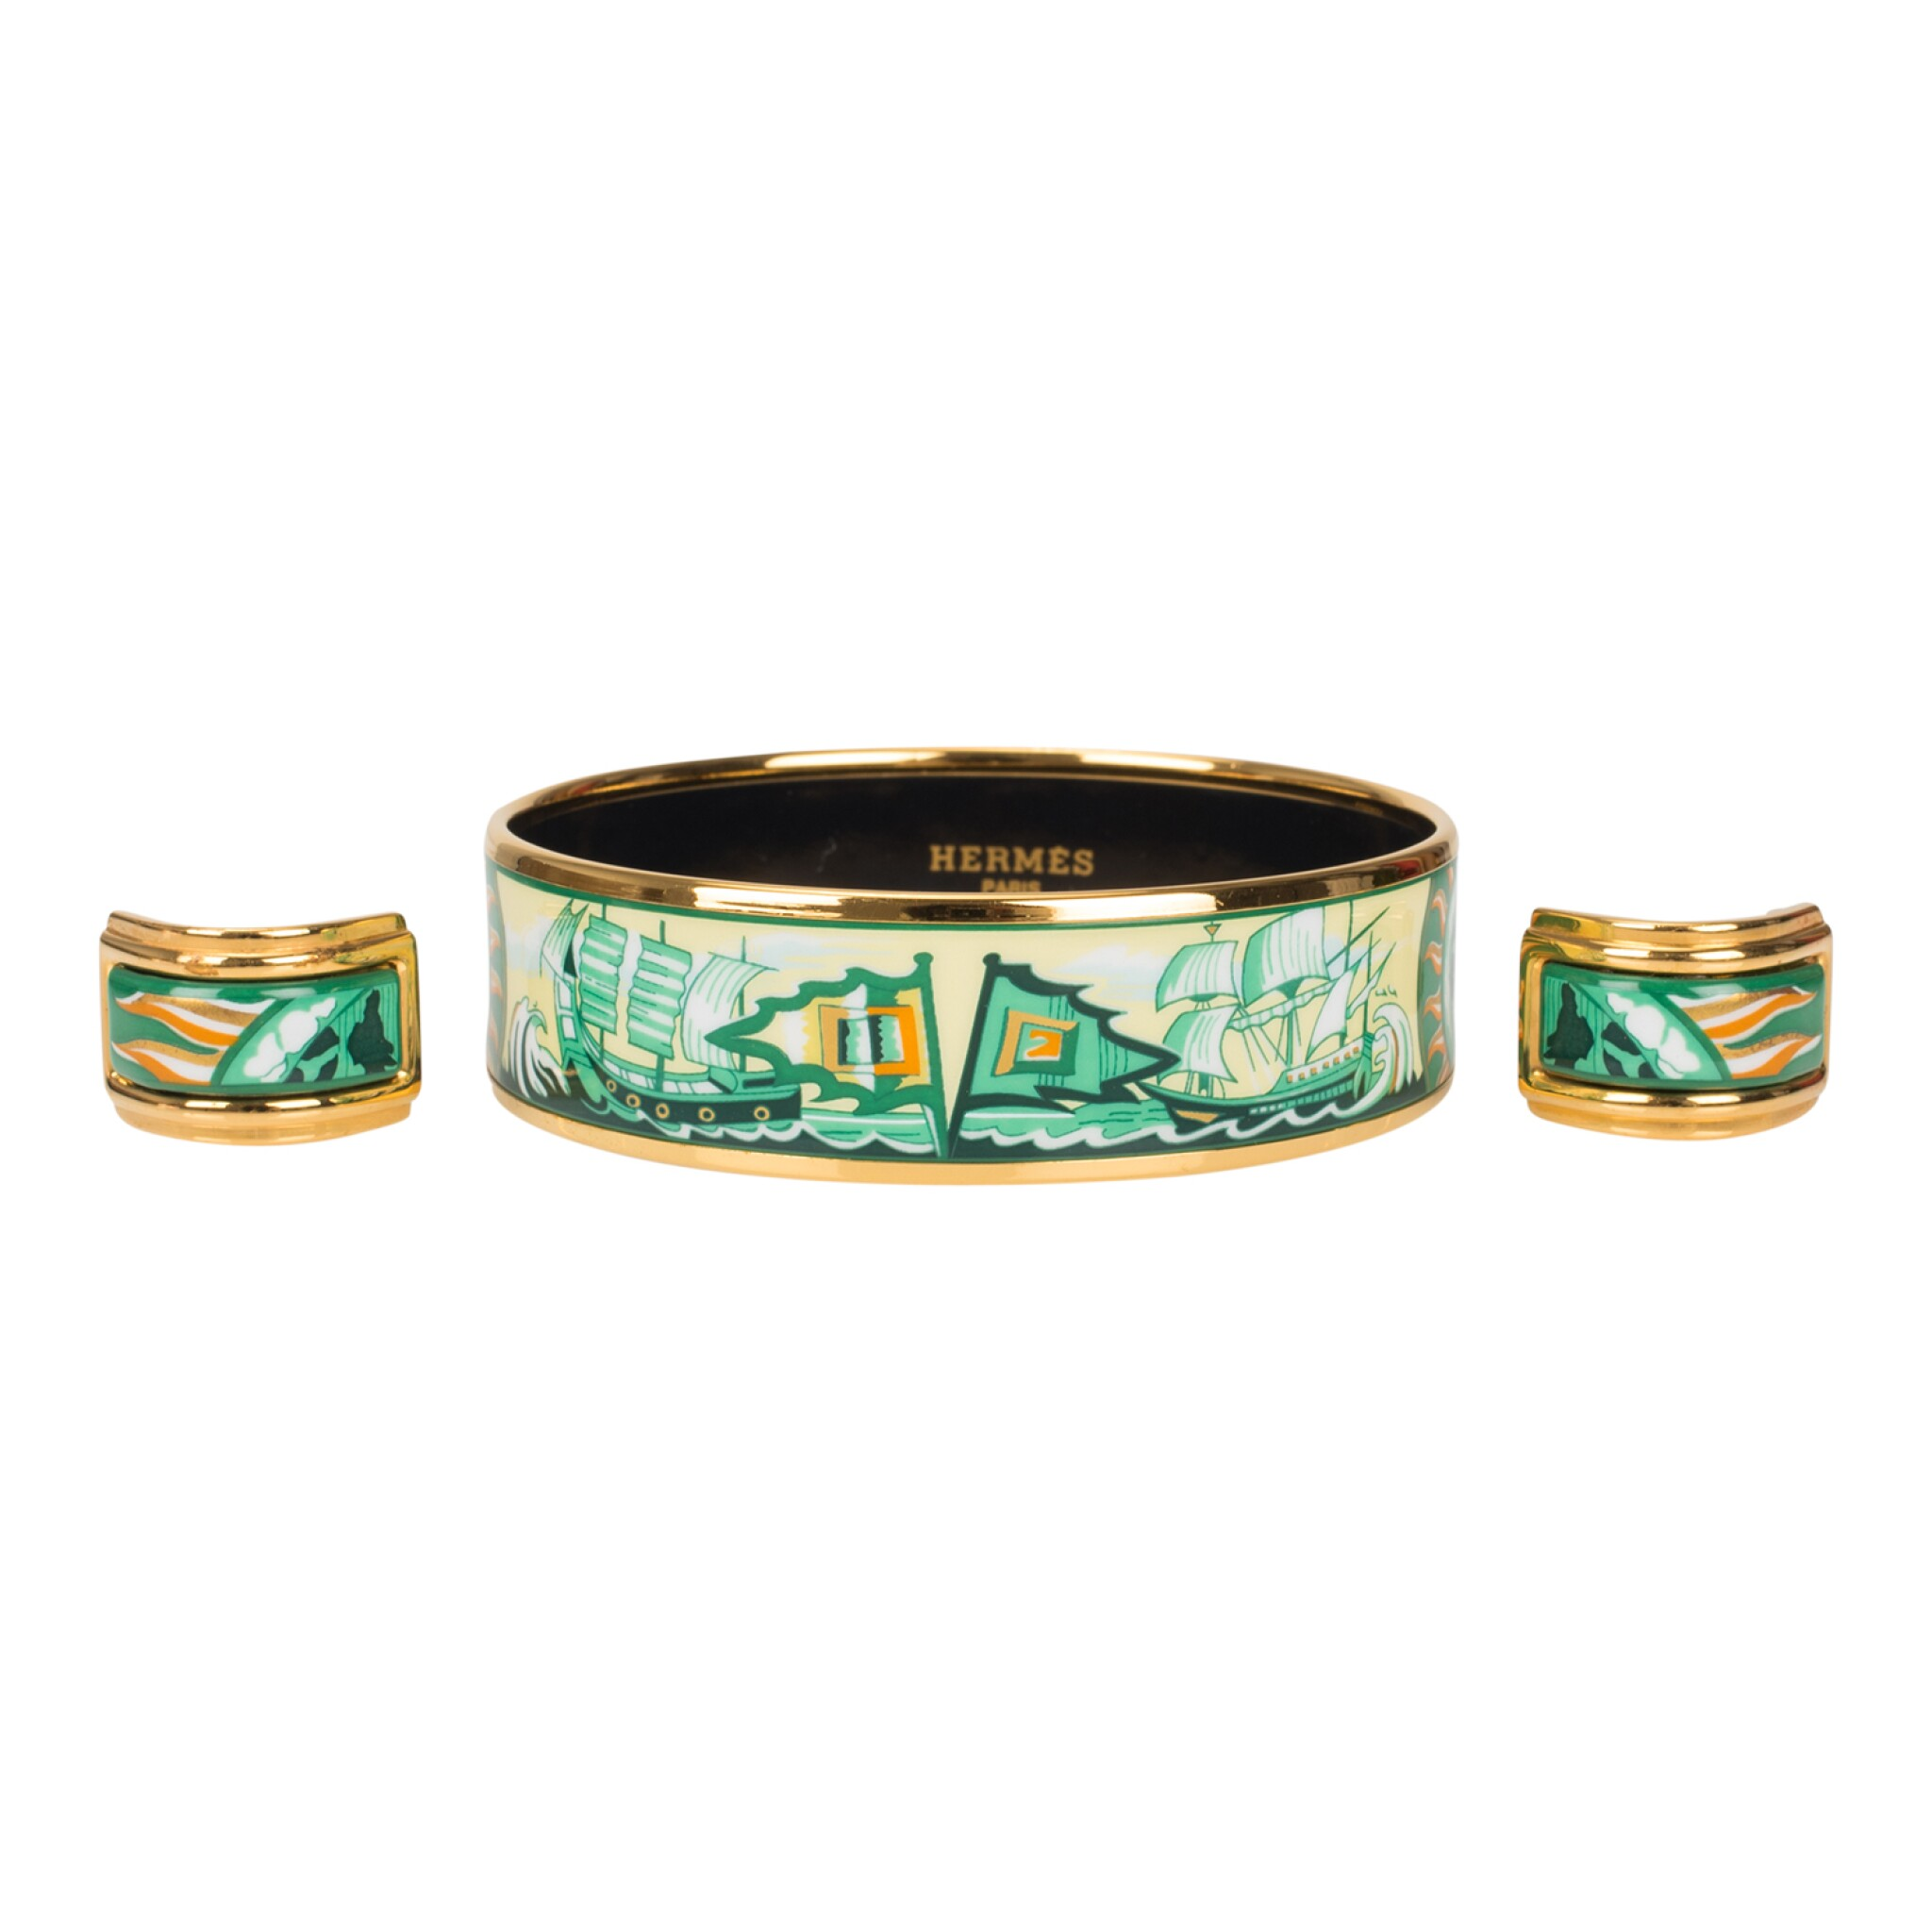 """View full screen - View 1 of Lot 98. Hermès Vintage """"Sailing Ships"""" Enamel Jewelry Set of Wide Printed Enamel Bracelet PM (65) and Clip On Enamel Earrings With Gold Plated Hardware."""